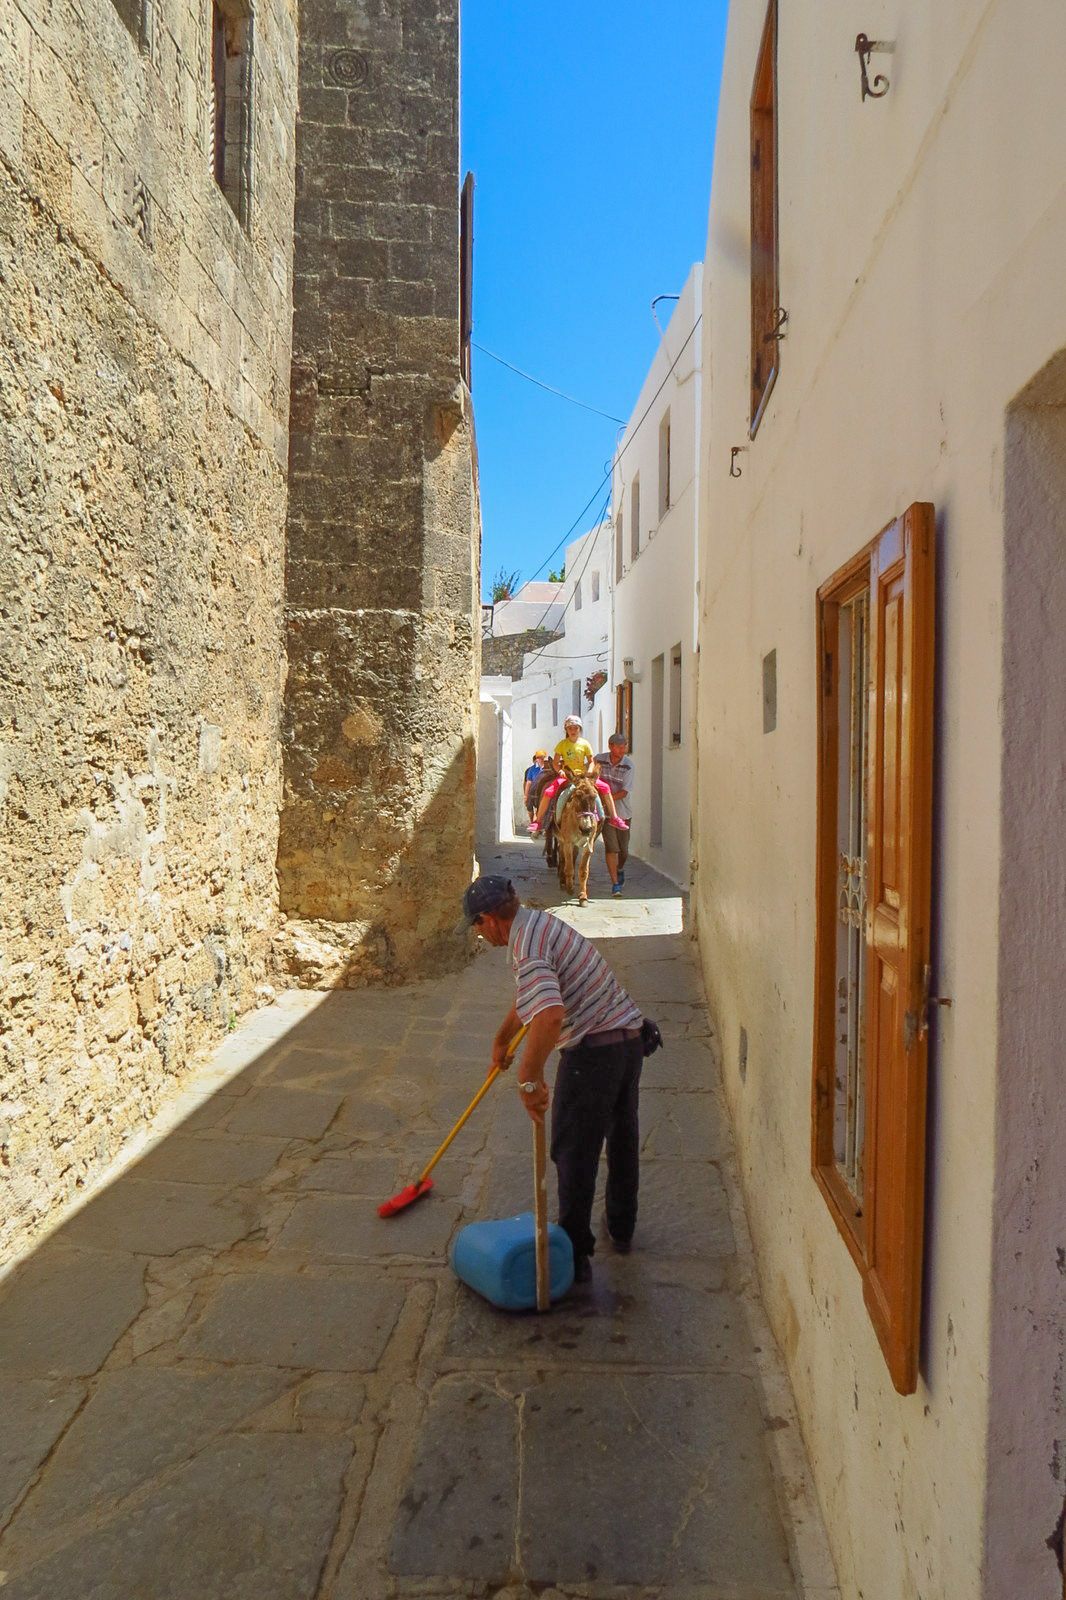 donkey-poo-cleaner-in-lindos-greece